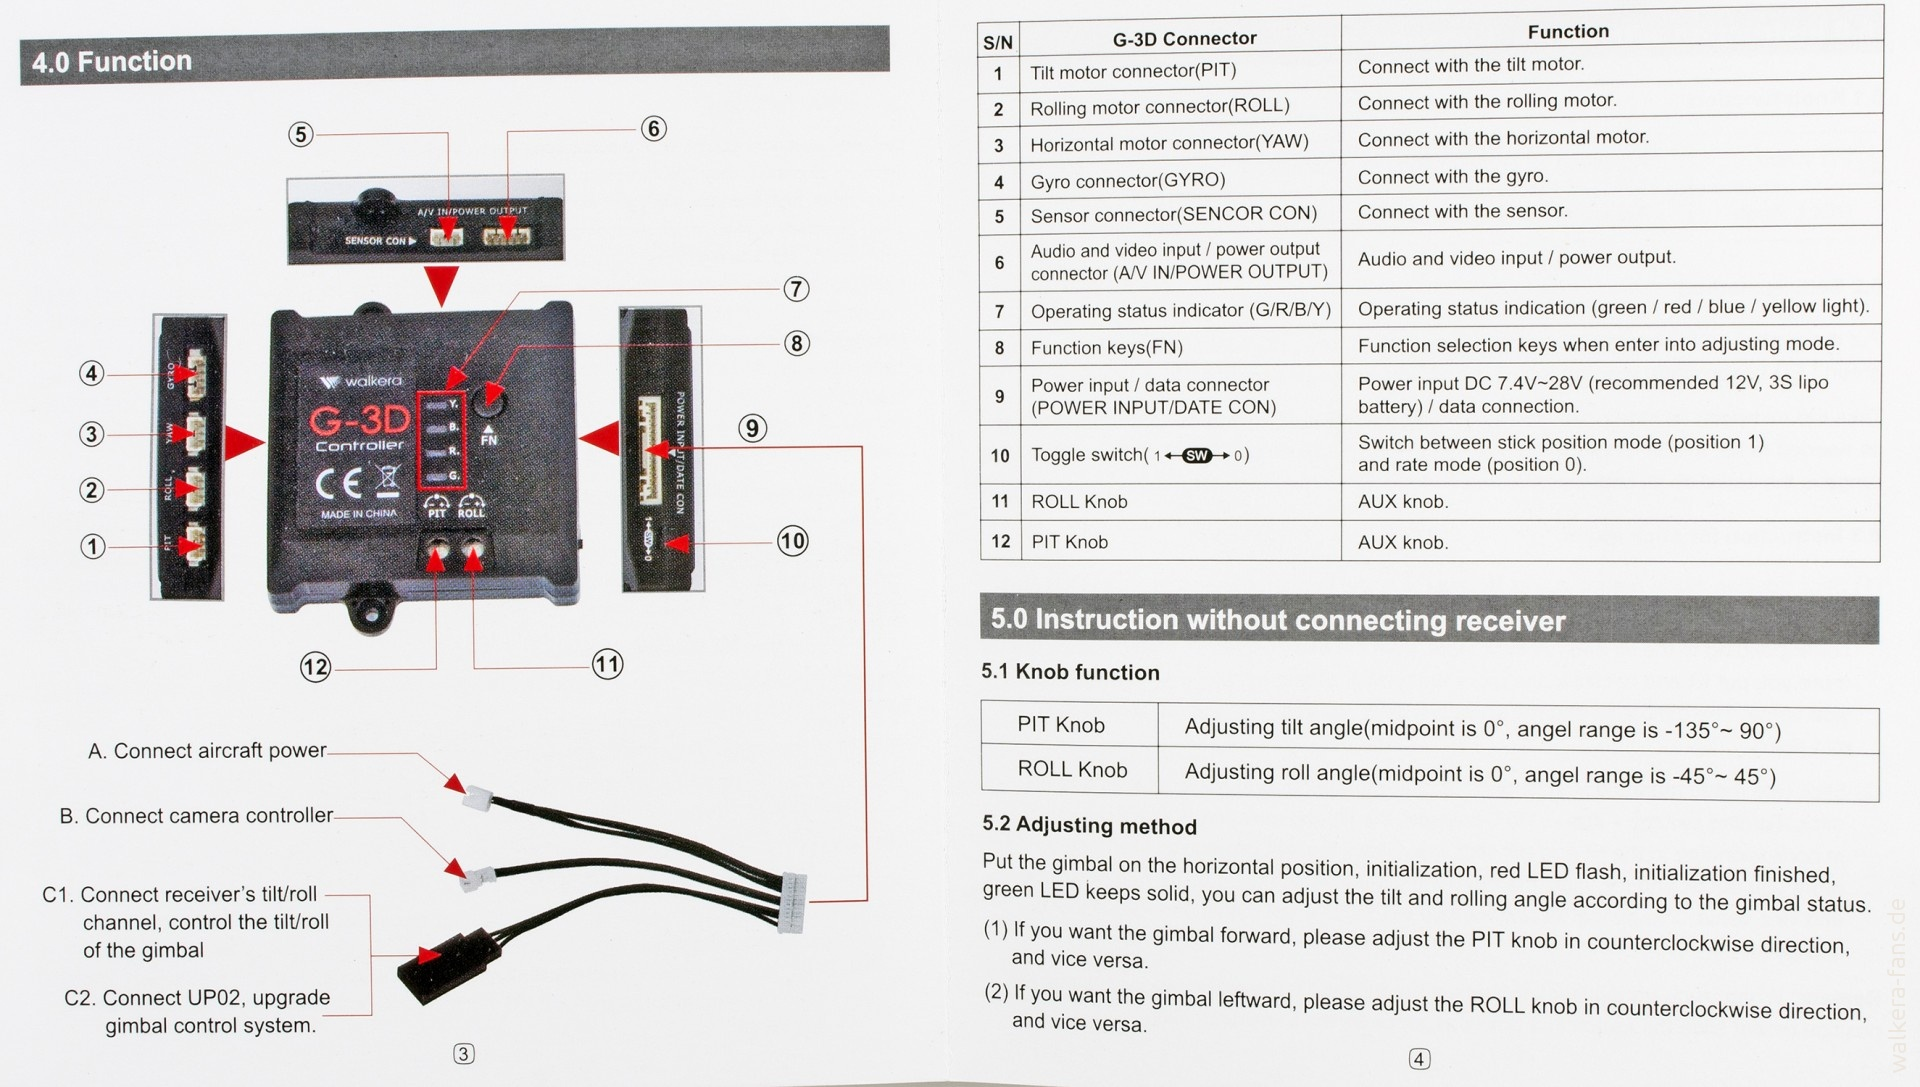 Peugeot 307 Fuse Box Radio Wiring Diagram Will Be A Thing 2005 Imageresizertool Com 407 208